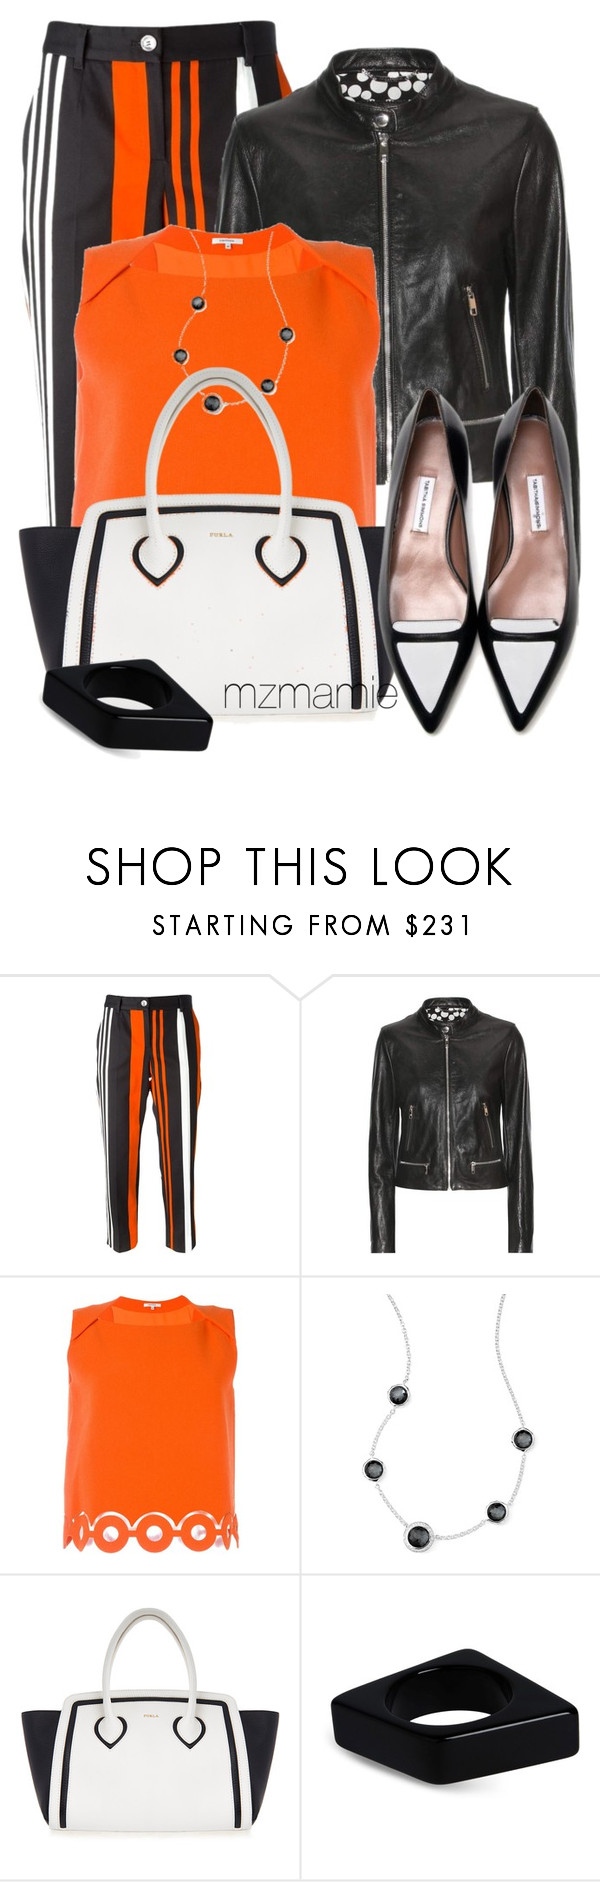 """Untitled #2797"" by mzmamie ❤ liked on Polyvore featuring Dolce&Gabbana, Carven, Ippolita, Furla and Marni"